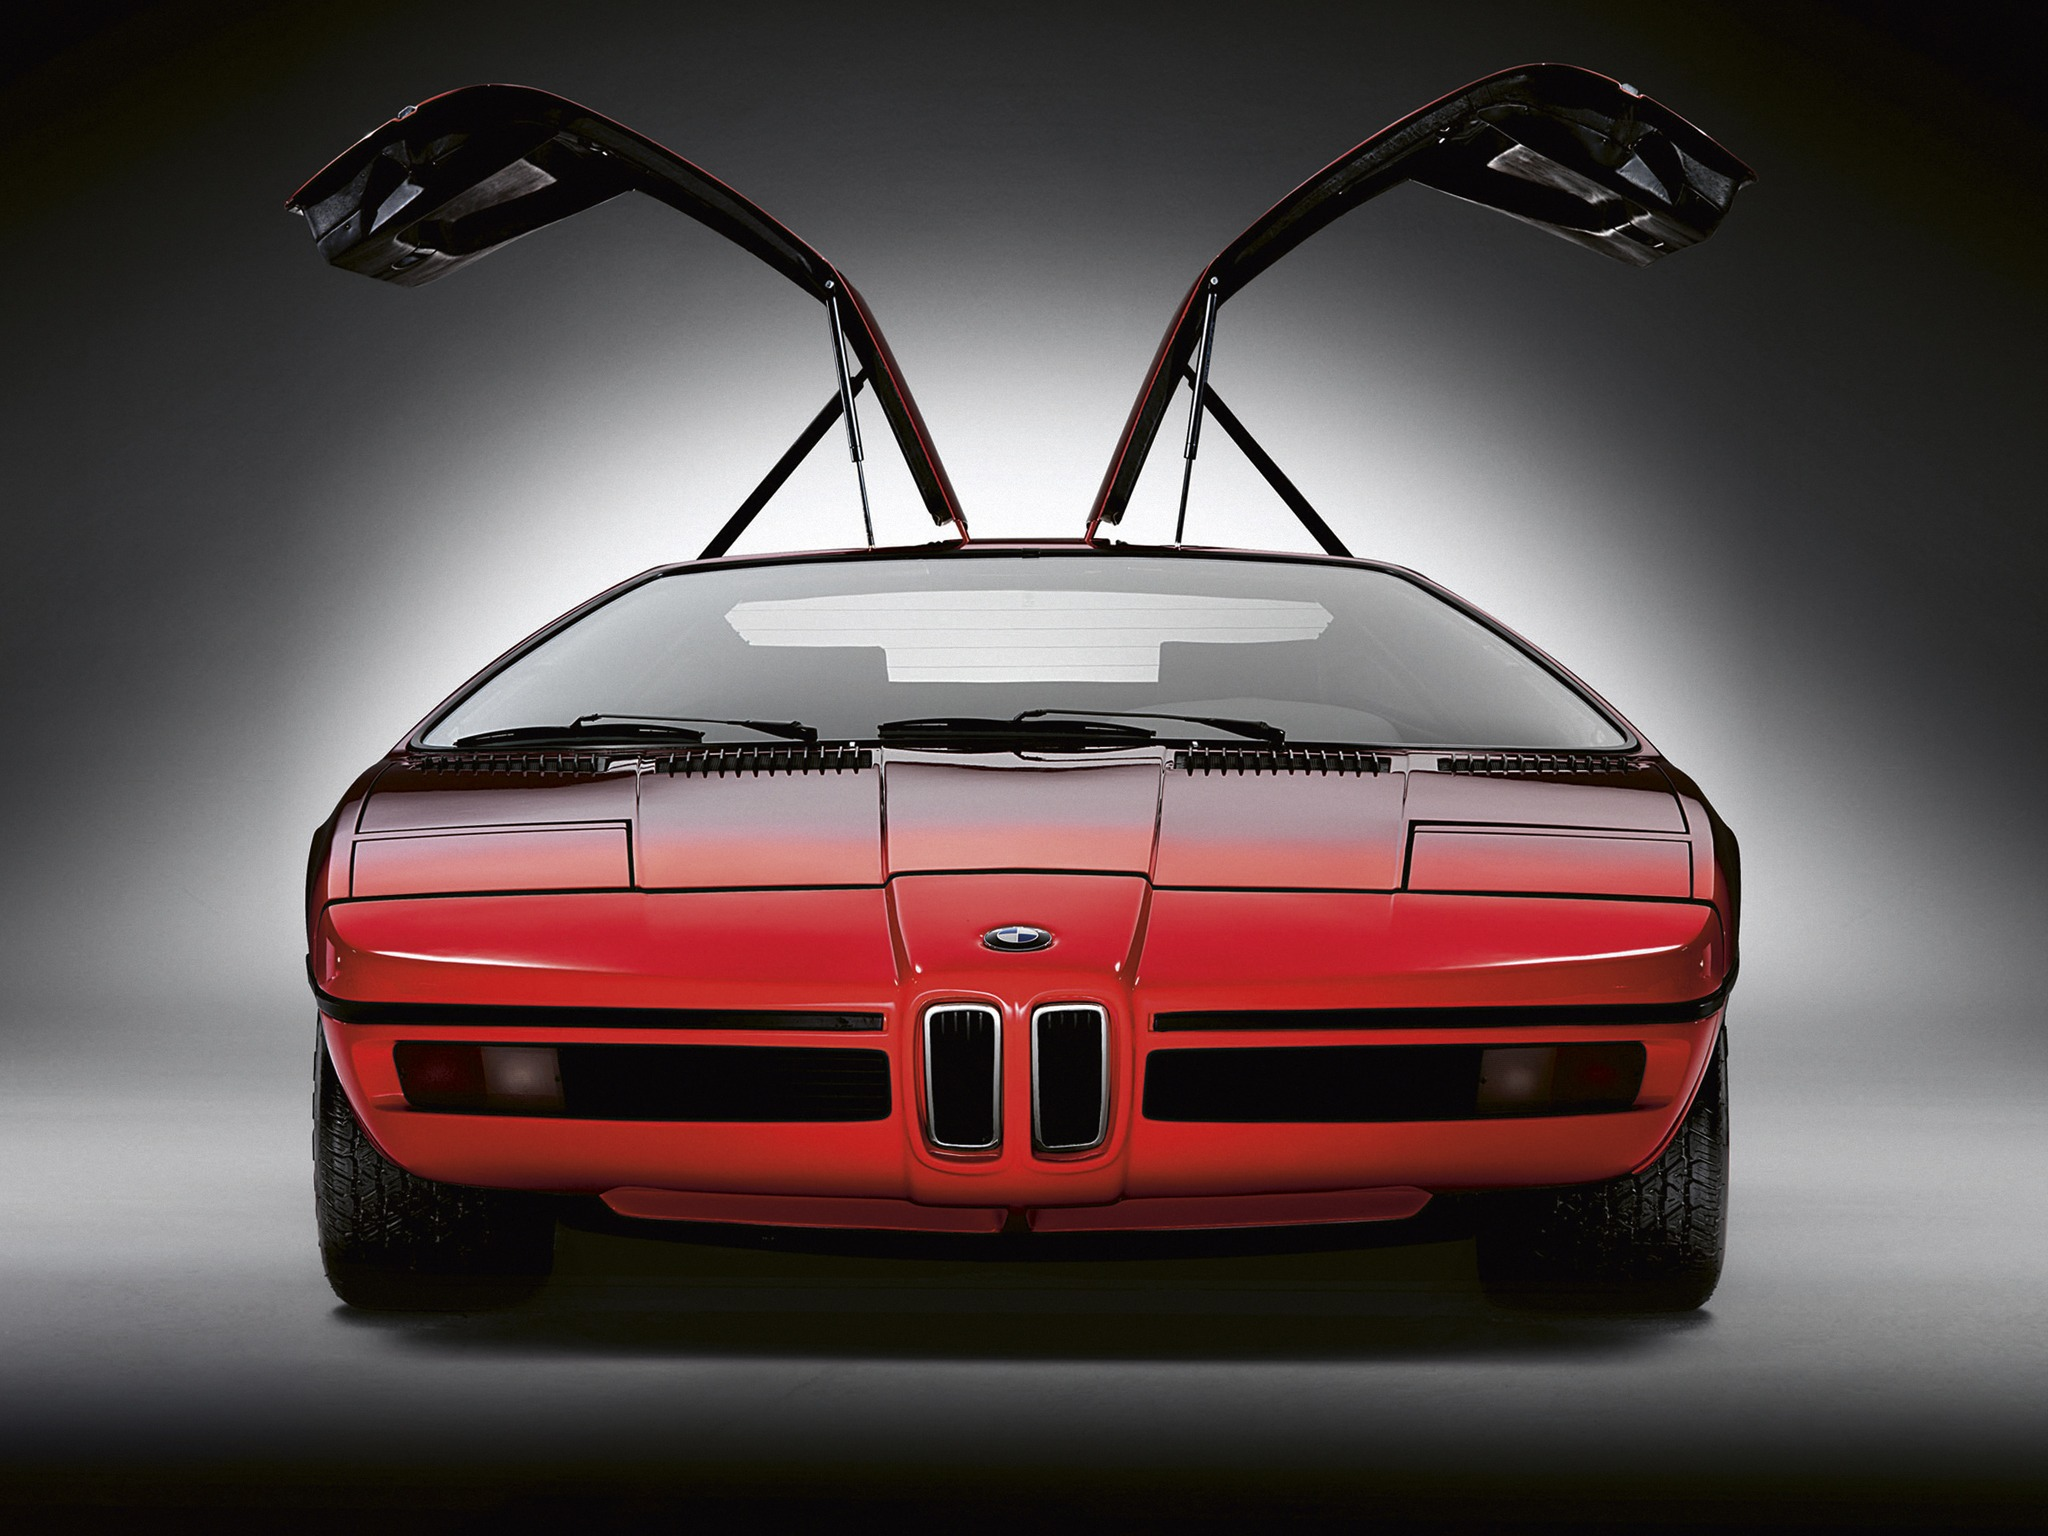 http://oldconceptcars.com/wp-content/uploads/bmw_turbo_concept_7.jpg